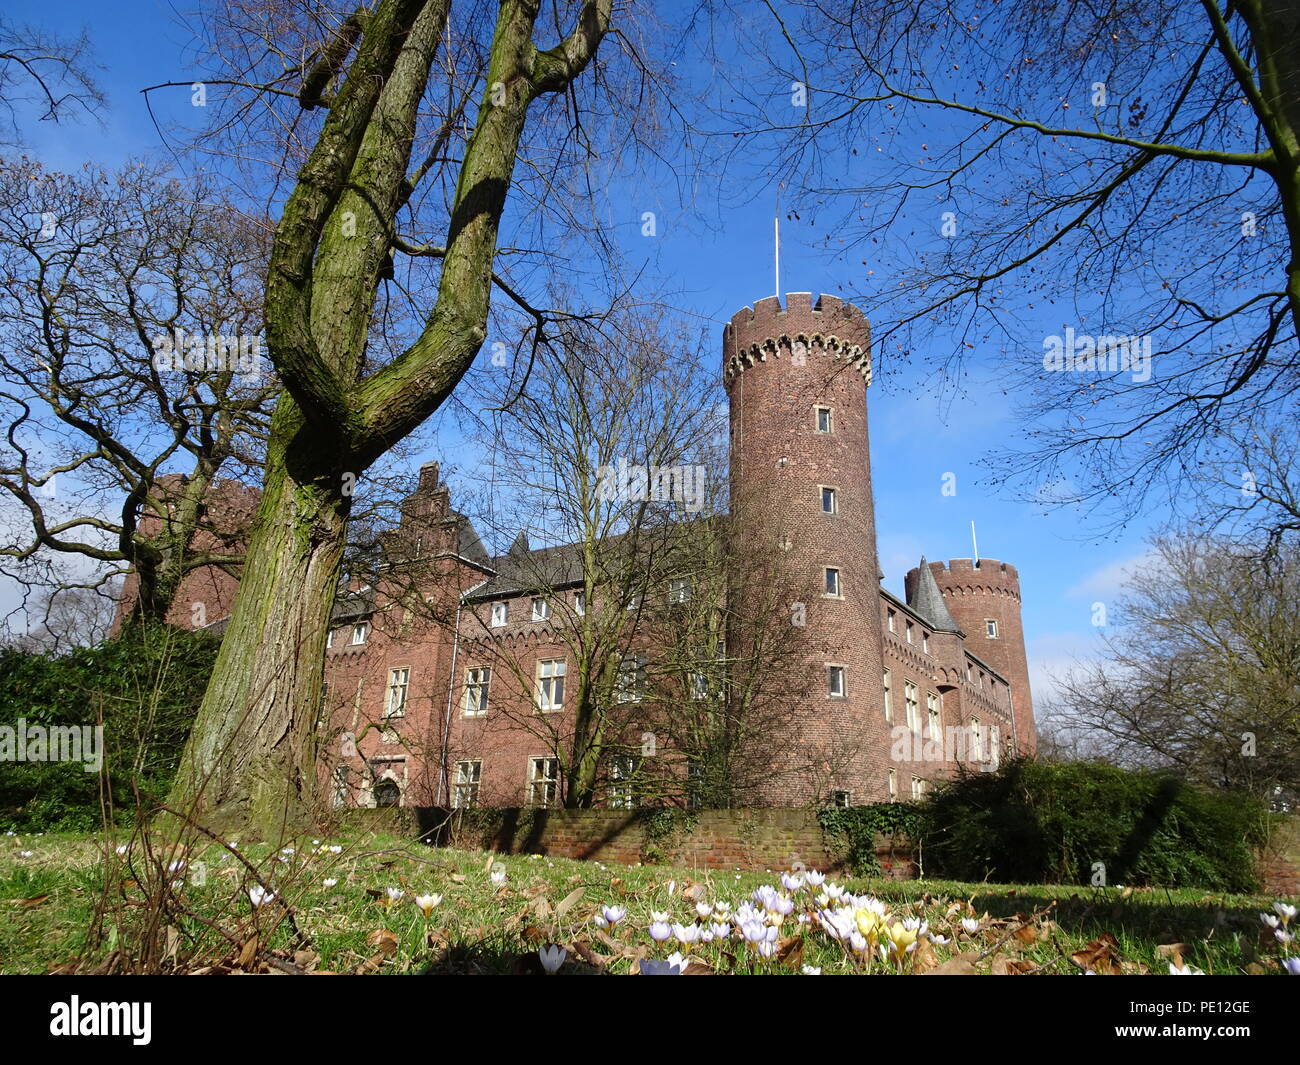 Medieval castle in Kempen on the Lower Rhine. Germany - Stock Image